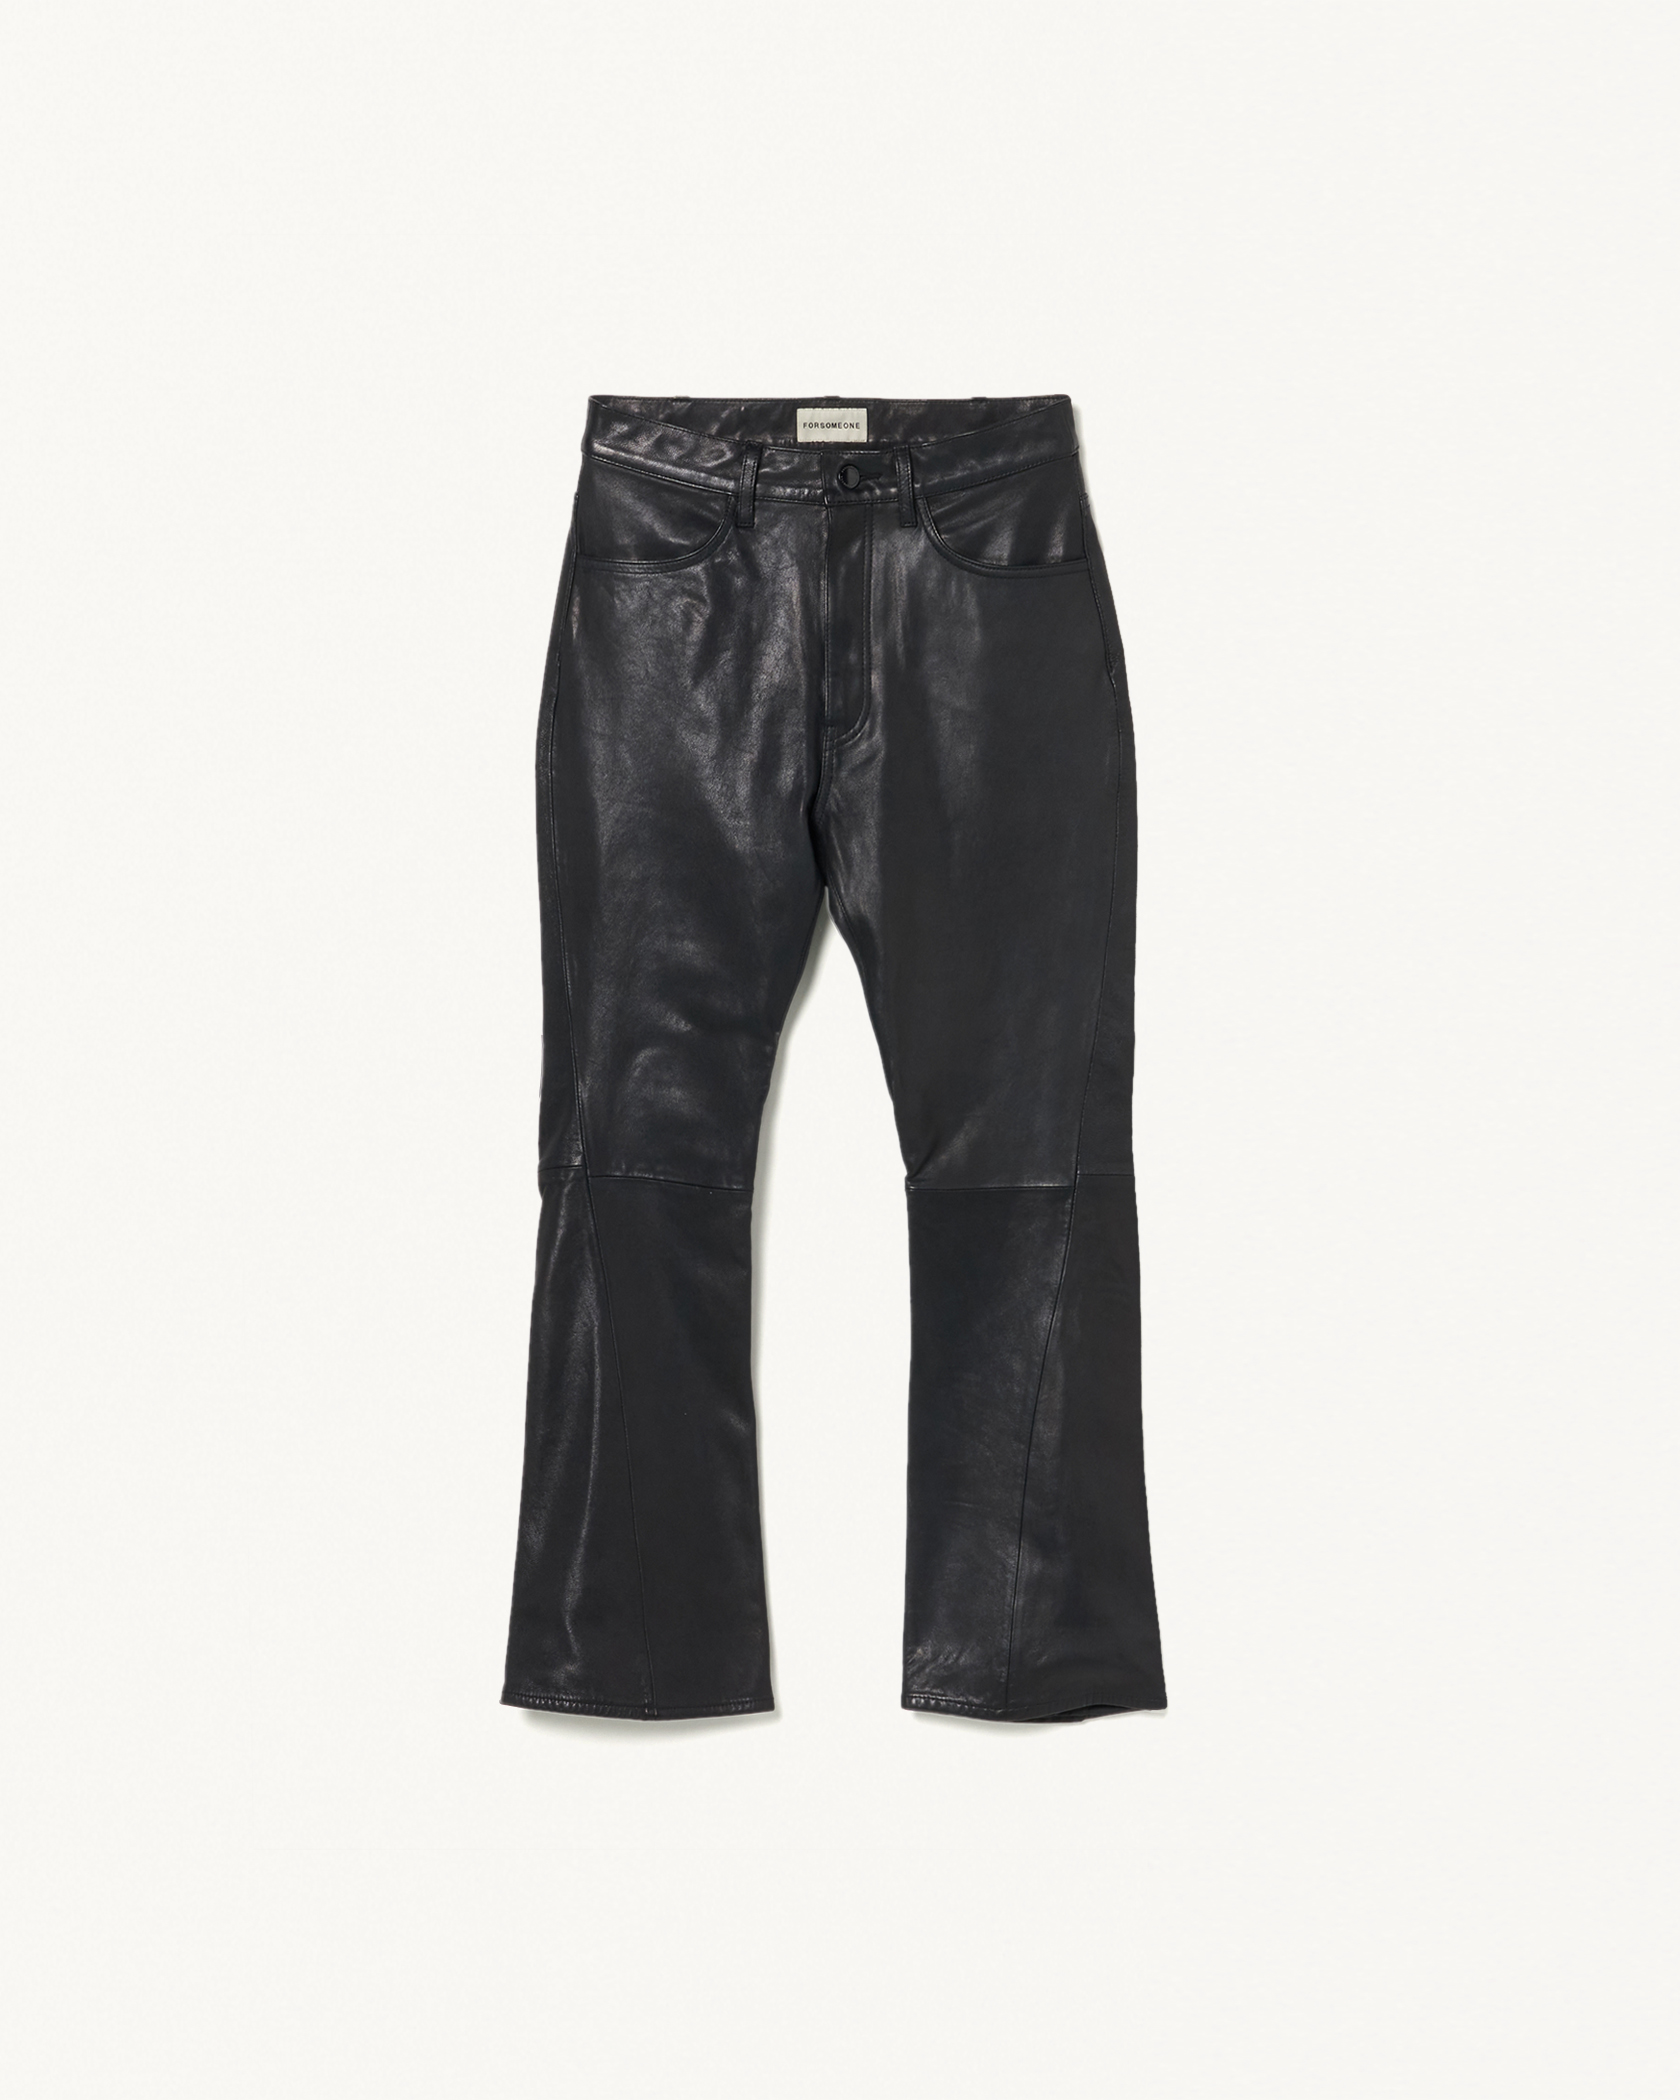 #146 LEATHER TROUSERS 詳細画像 Black 1